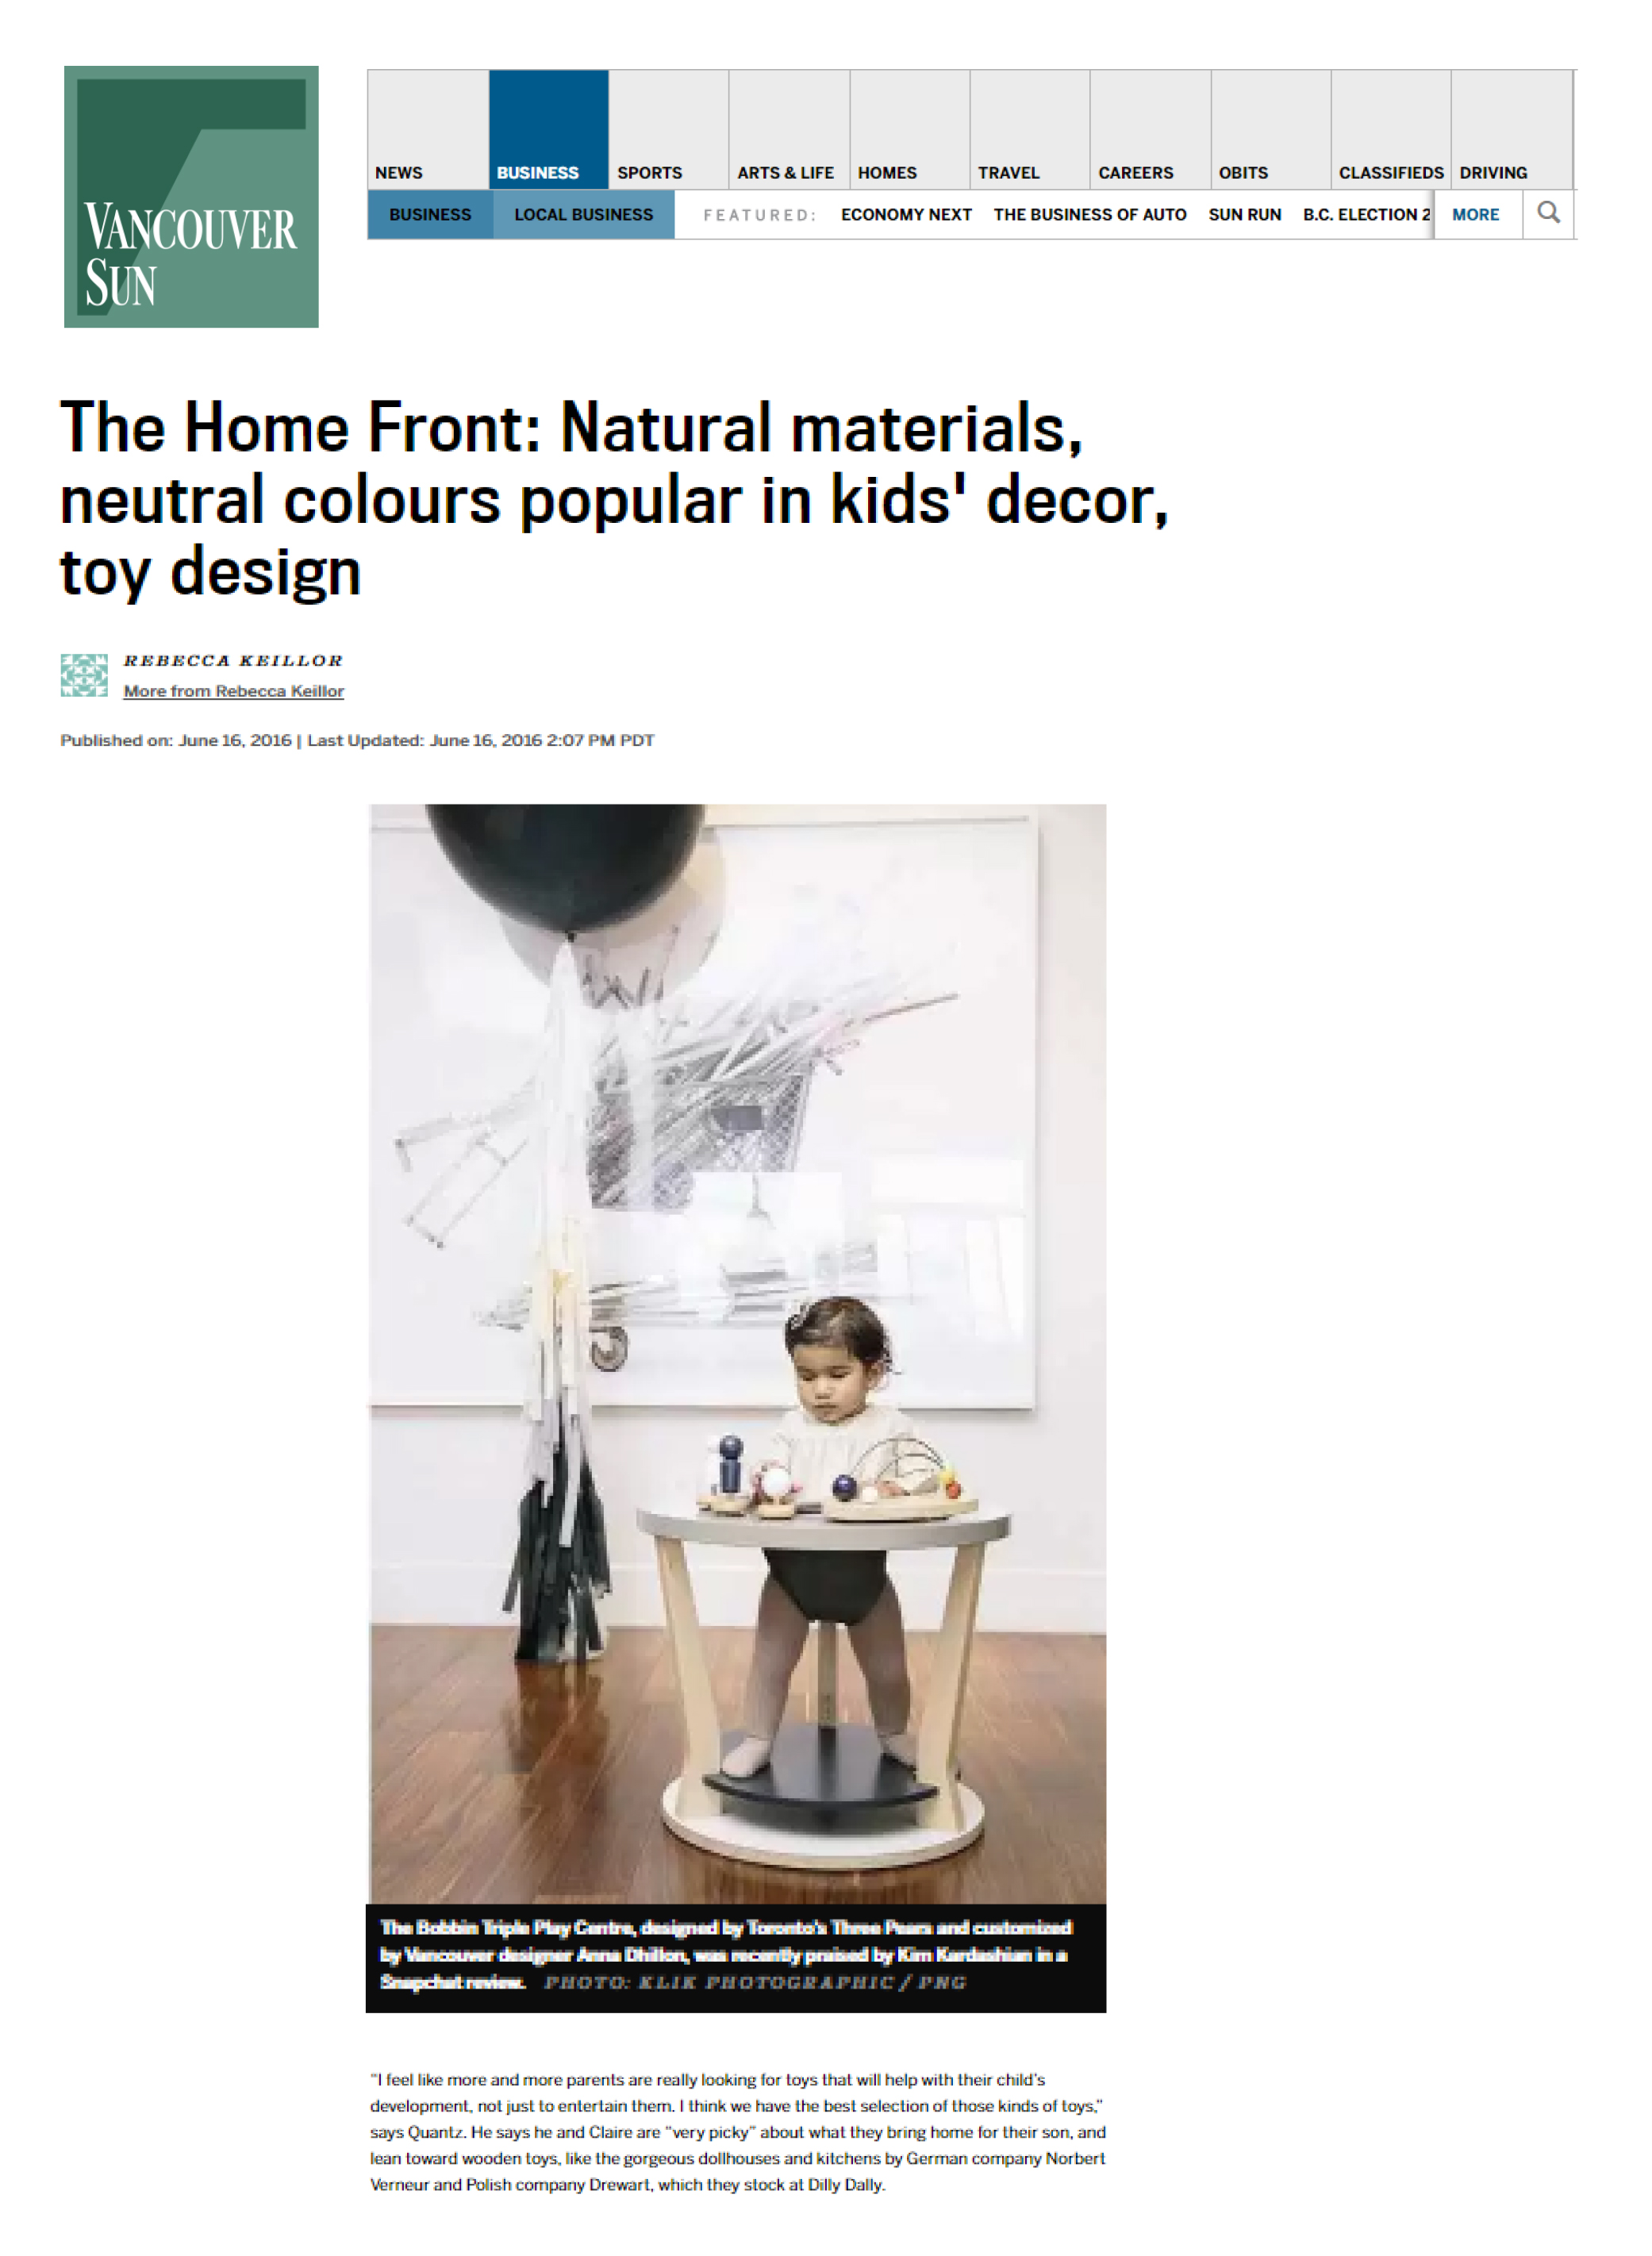 16_06-VS-The_Home_Front-Natural_Materials_Neutral_Colors....jpg